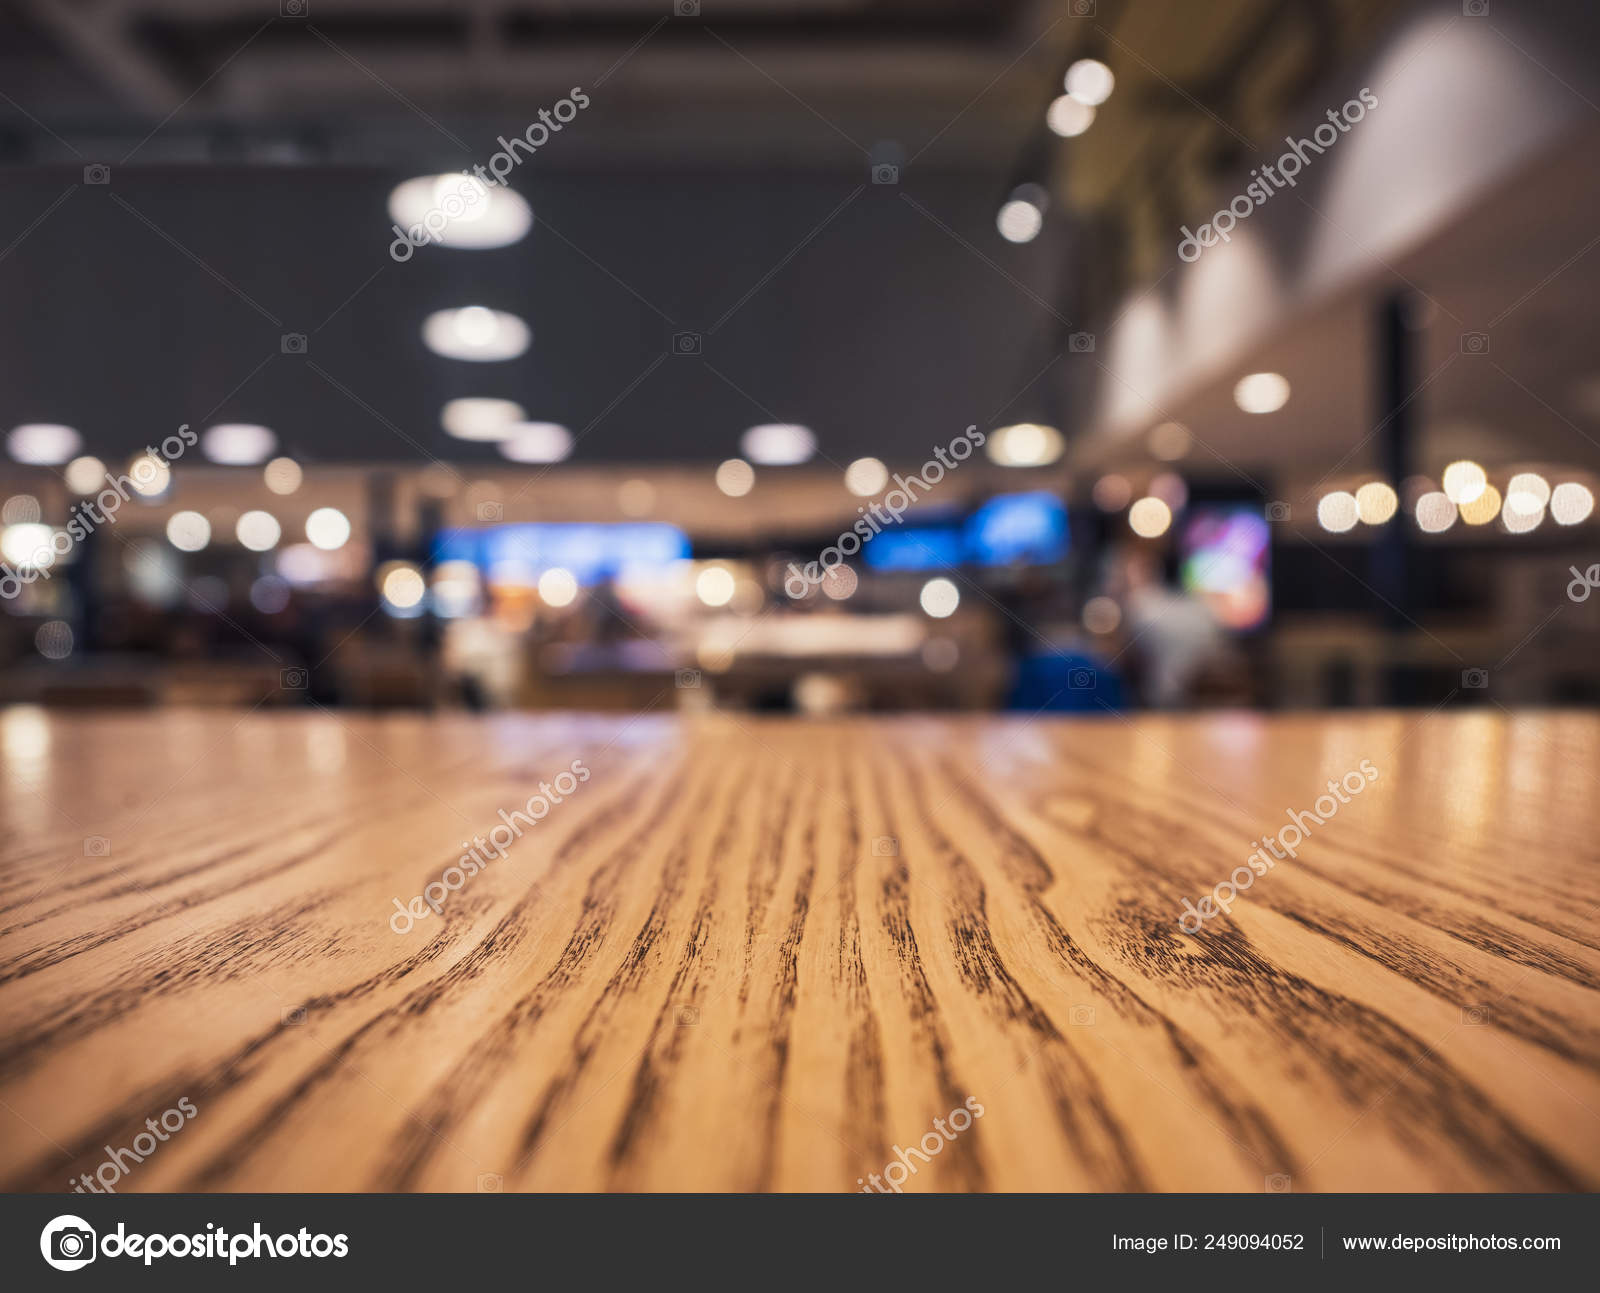 Table Top Counter Blur Lighting Bar Restaurant Shop Interior Background Stock Photo C Viteethumb 249094052